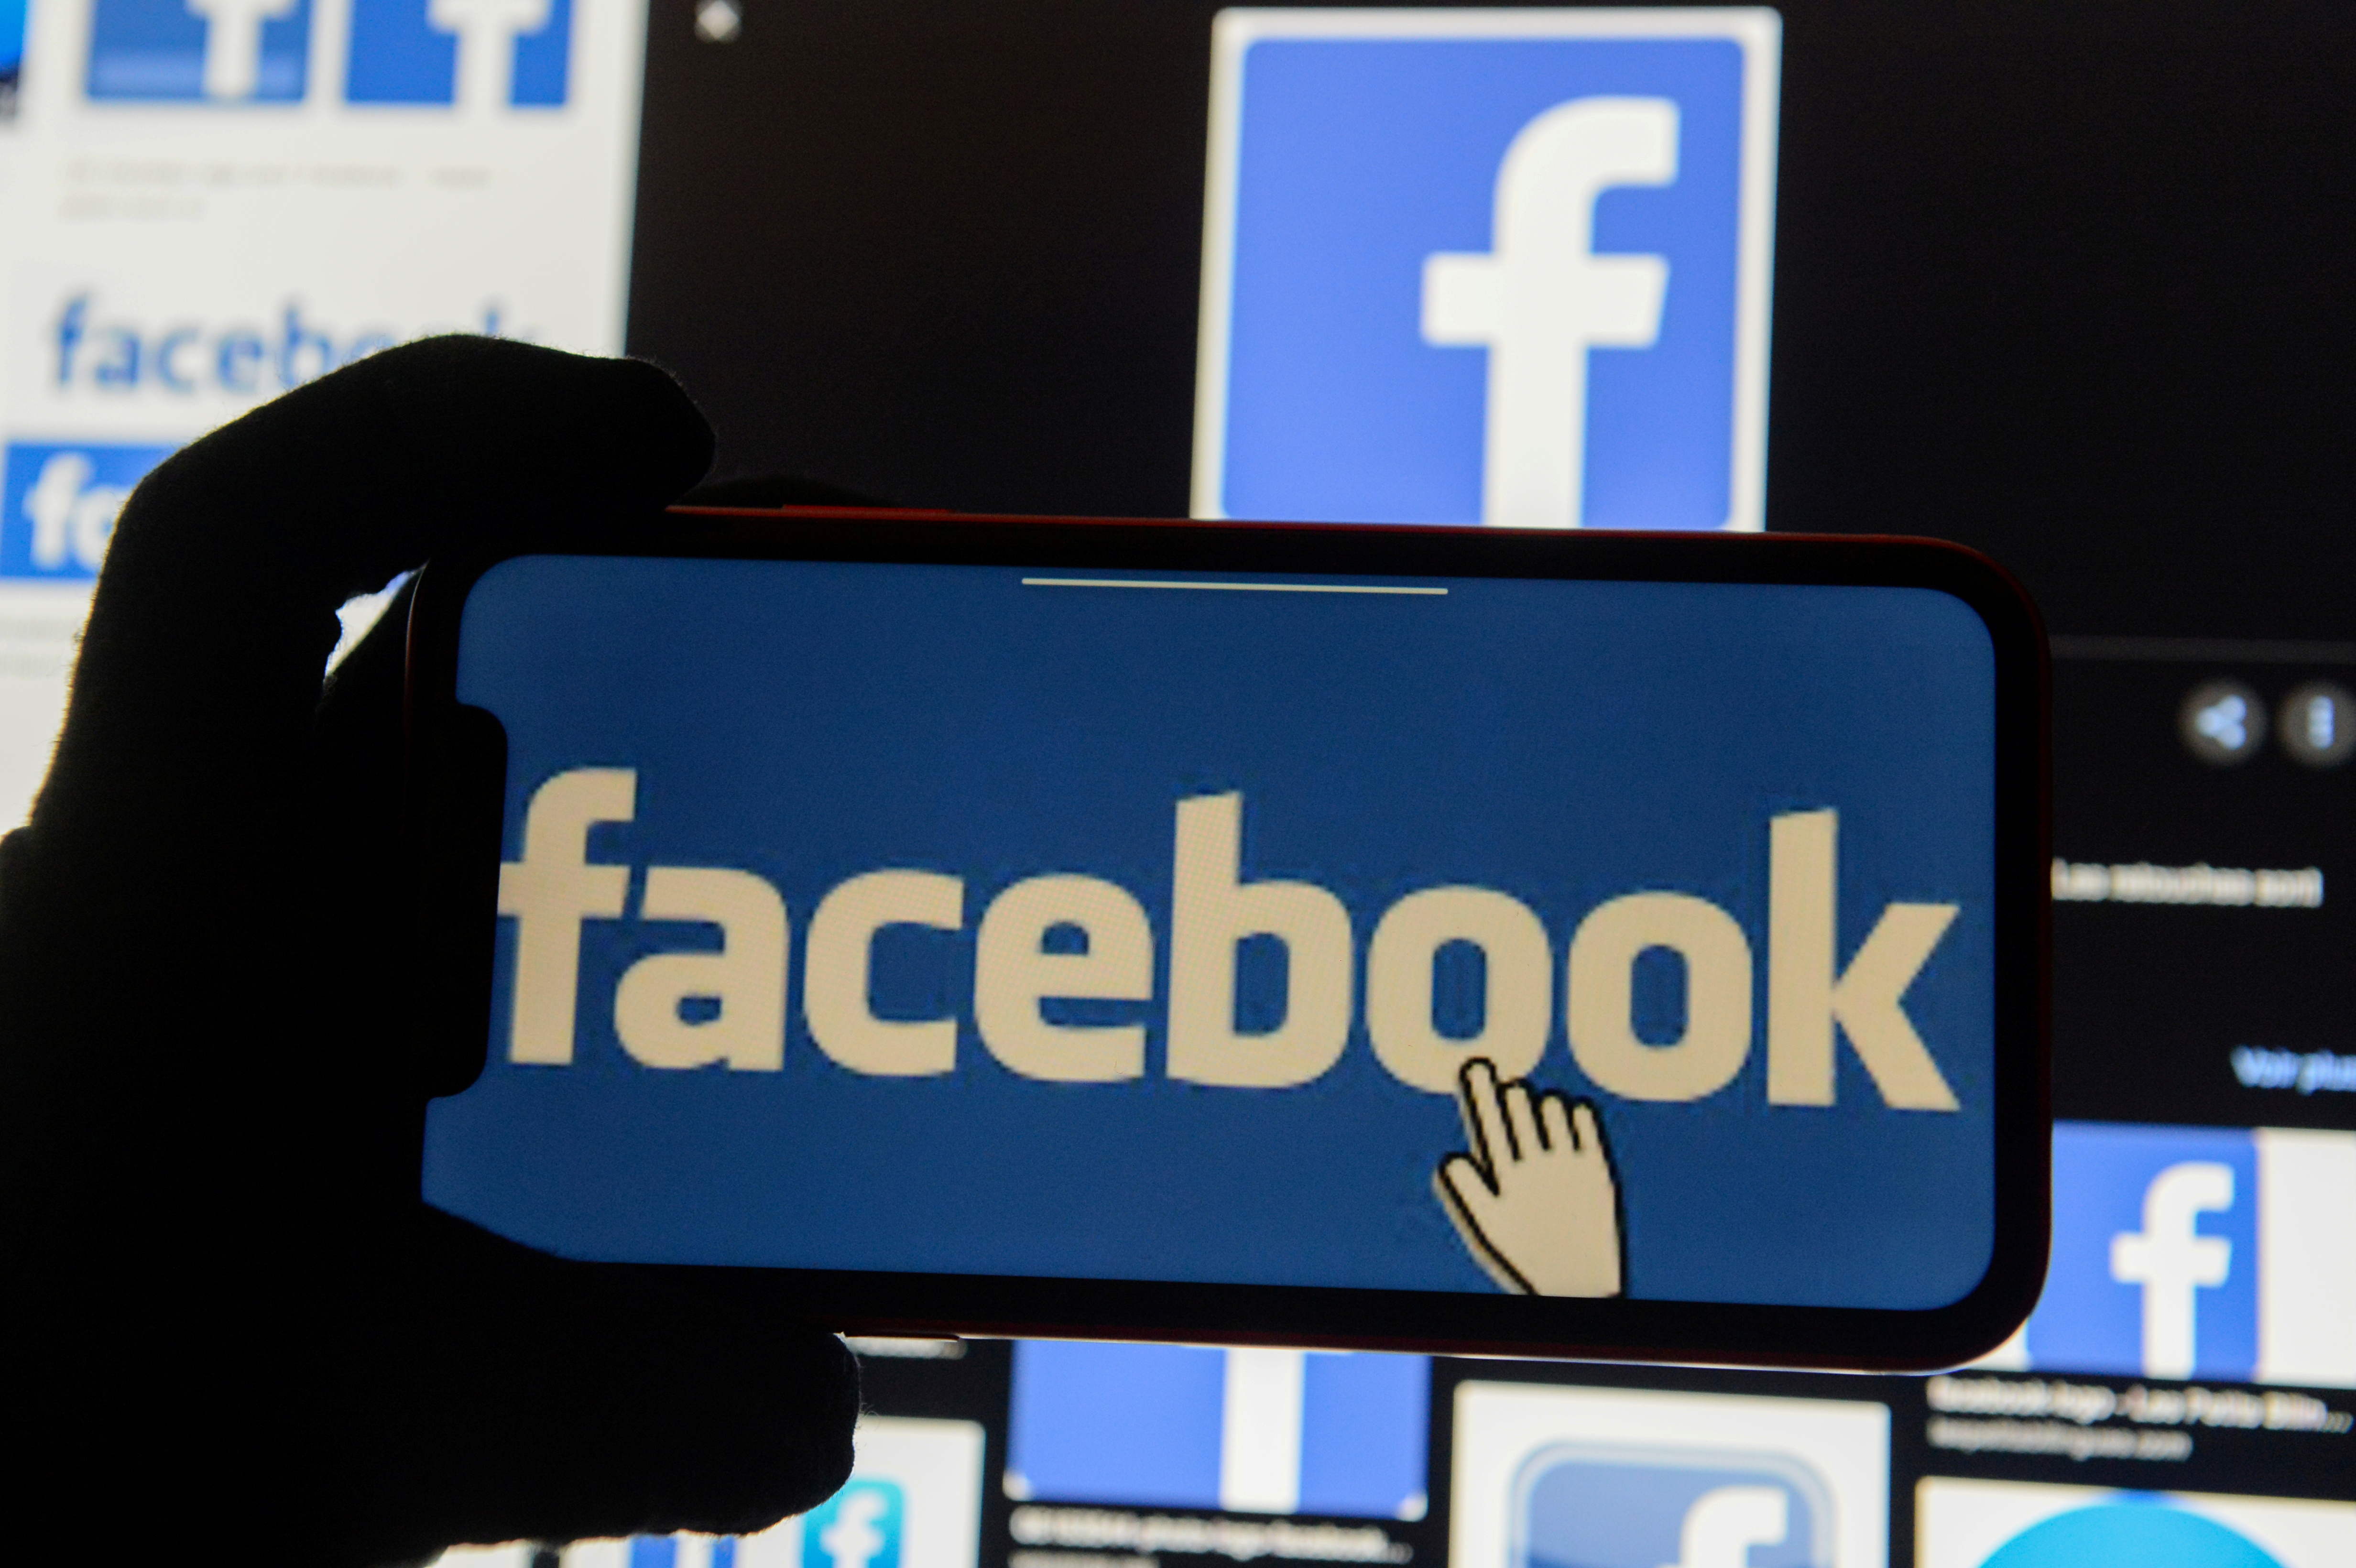 The Facebook logo is displayed on a mobile phone in this picture illustration taken December 2, 2019. REUTERS/Johanna Geron/Illustration/File Photo